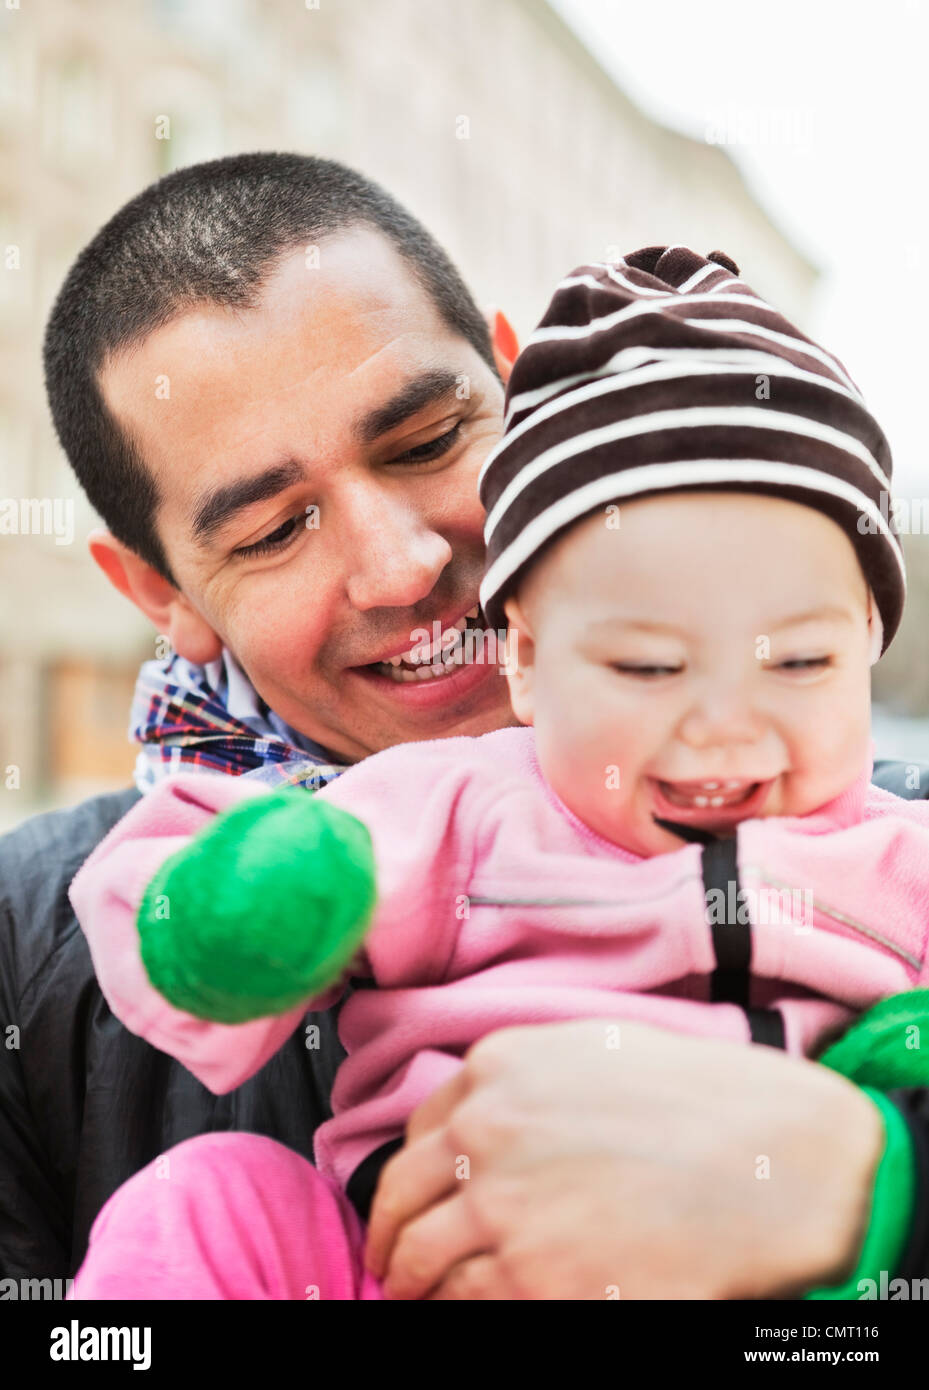 Happy father holding laughing baby (0-11 months) - Stock Image